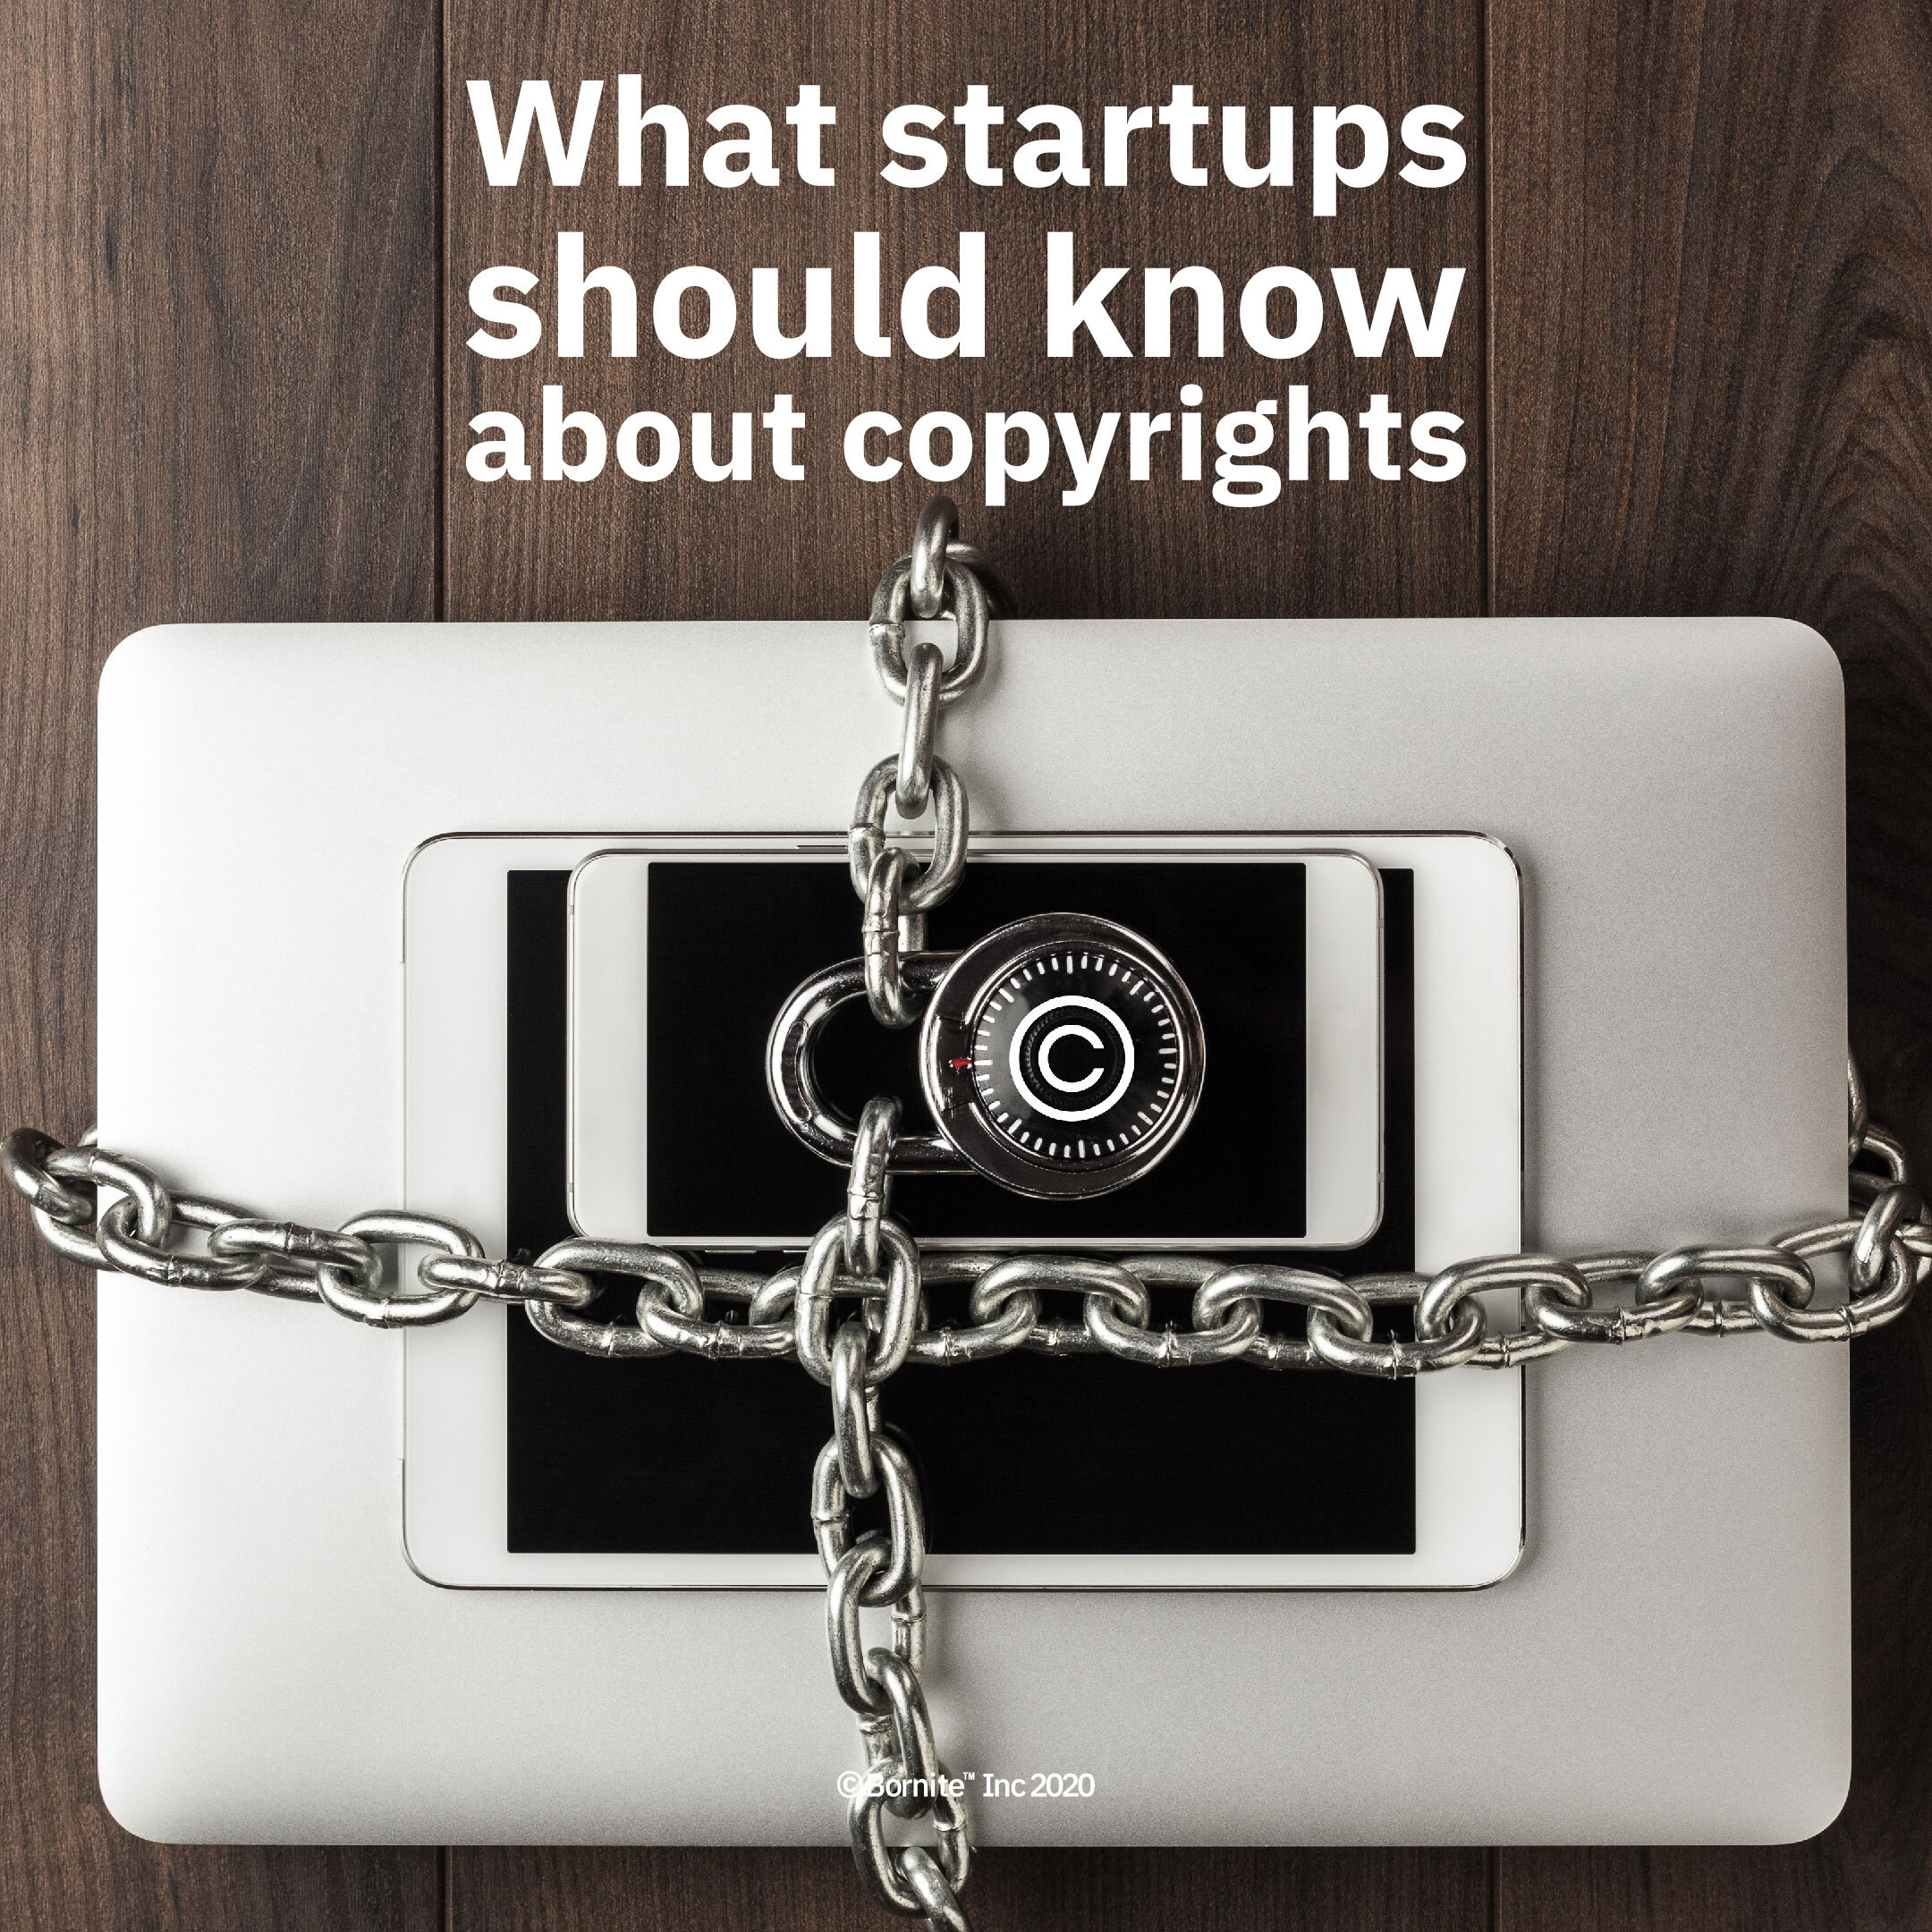 What startups should know about copyrights